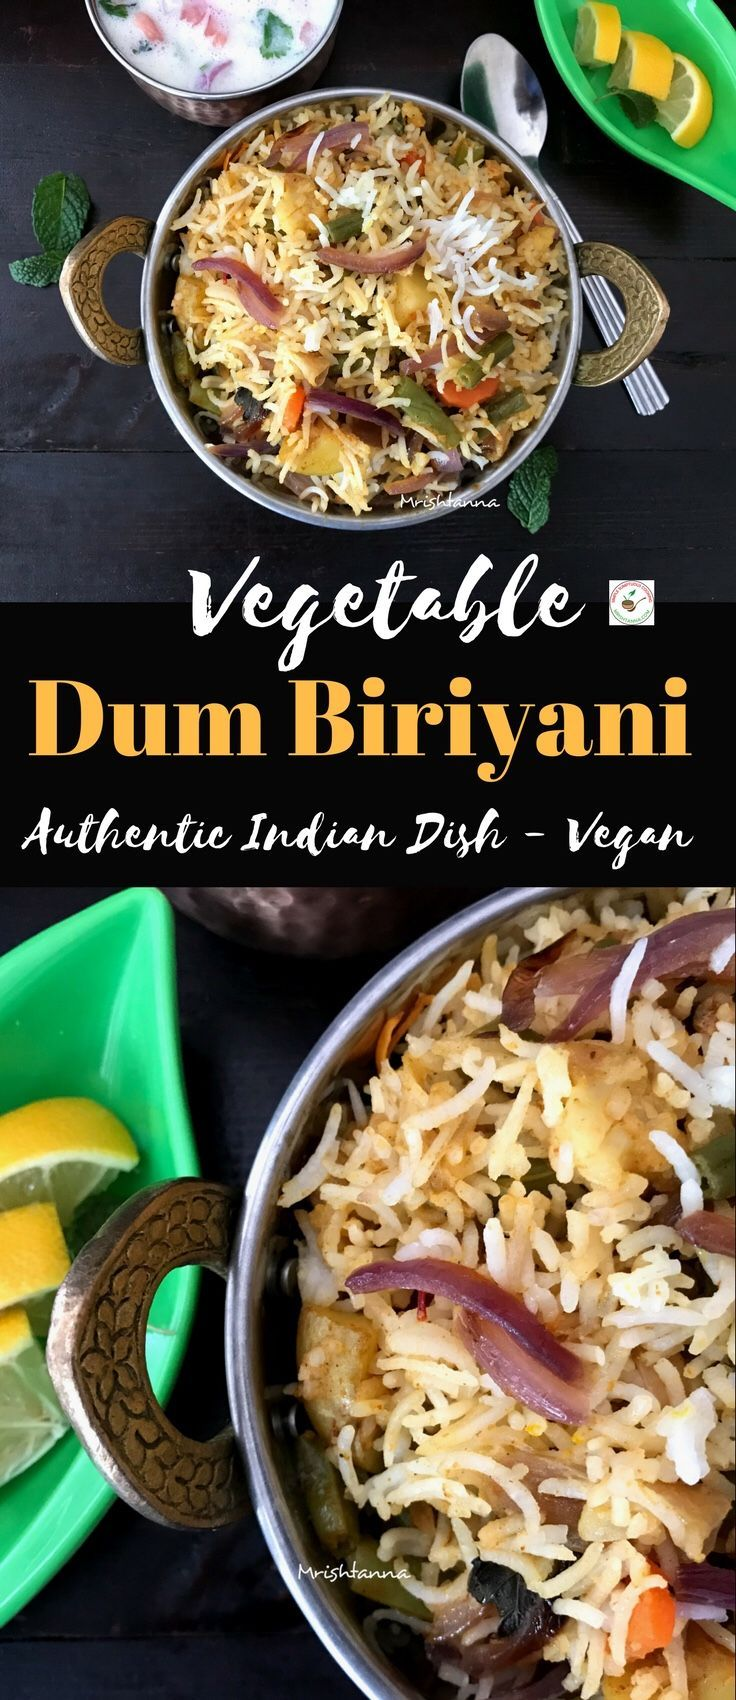 Vegetable dum biryani recipe vegans recipes and food forumfinder Image collections